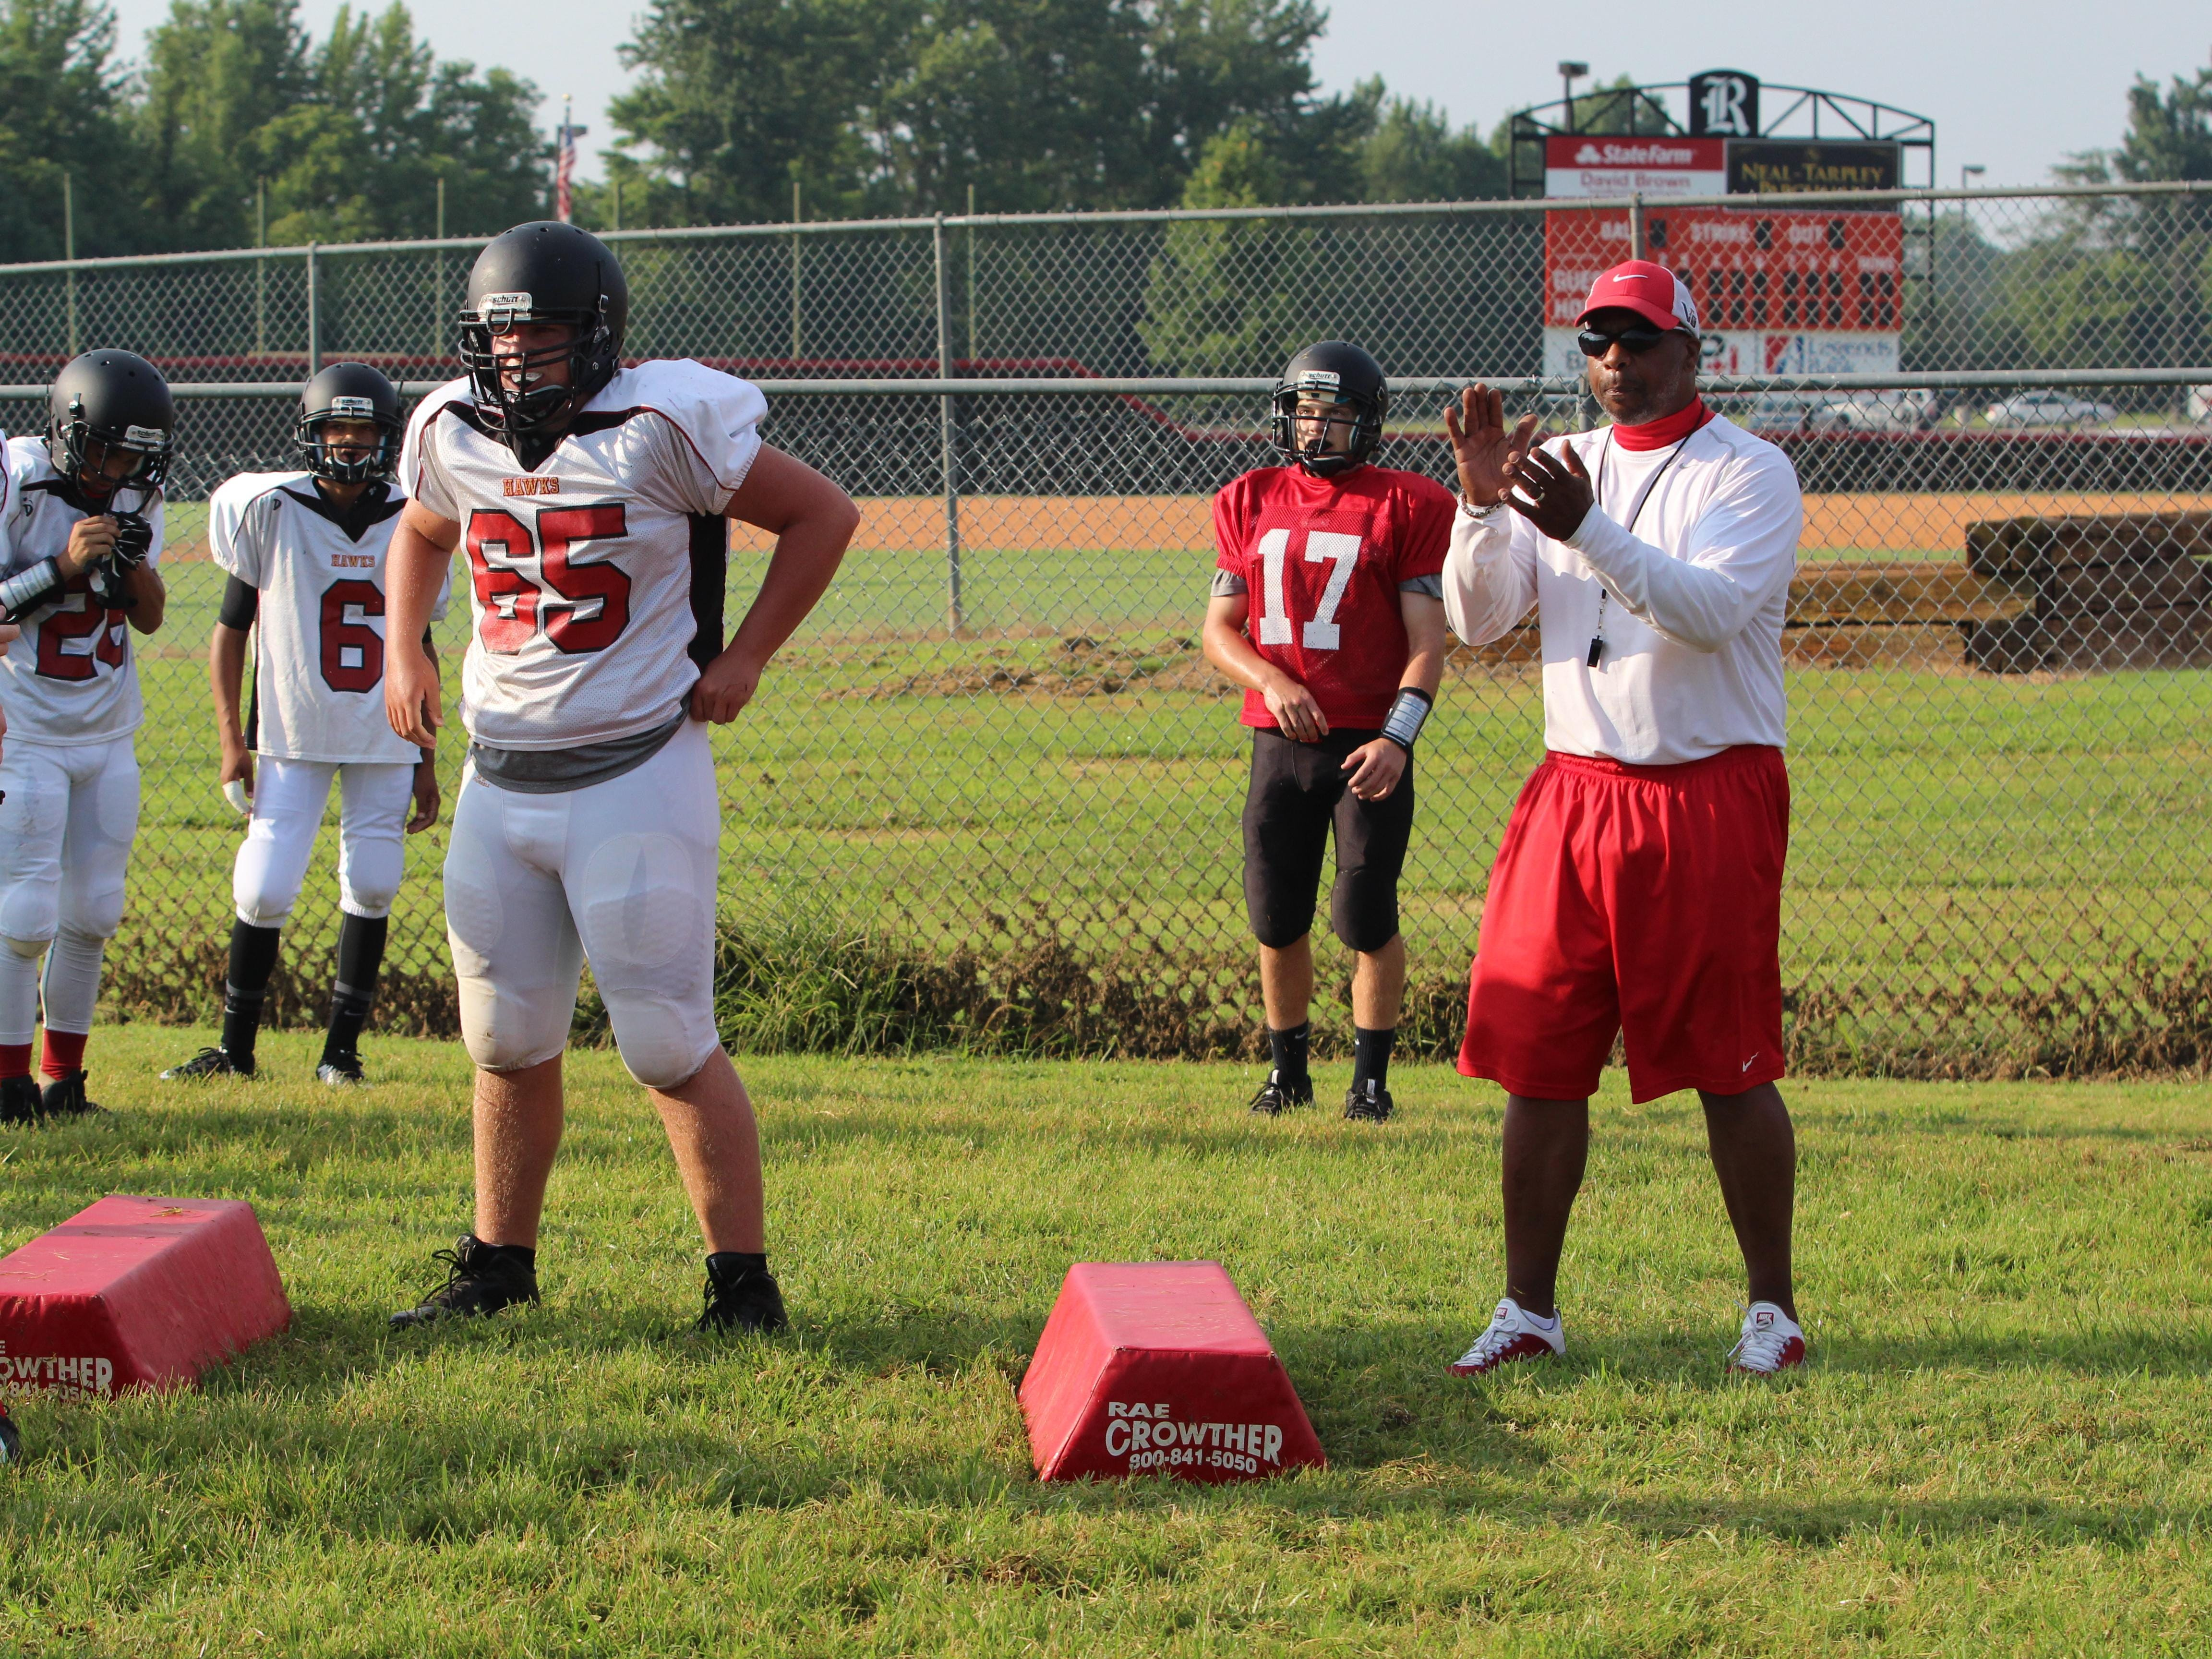 Rossview coach Ron Lambert (right) encourages his team as they compete during the first official day of football practice last month.